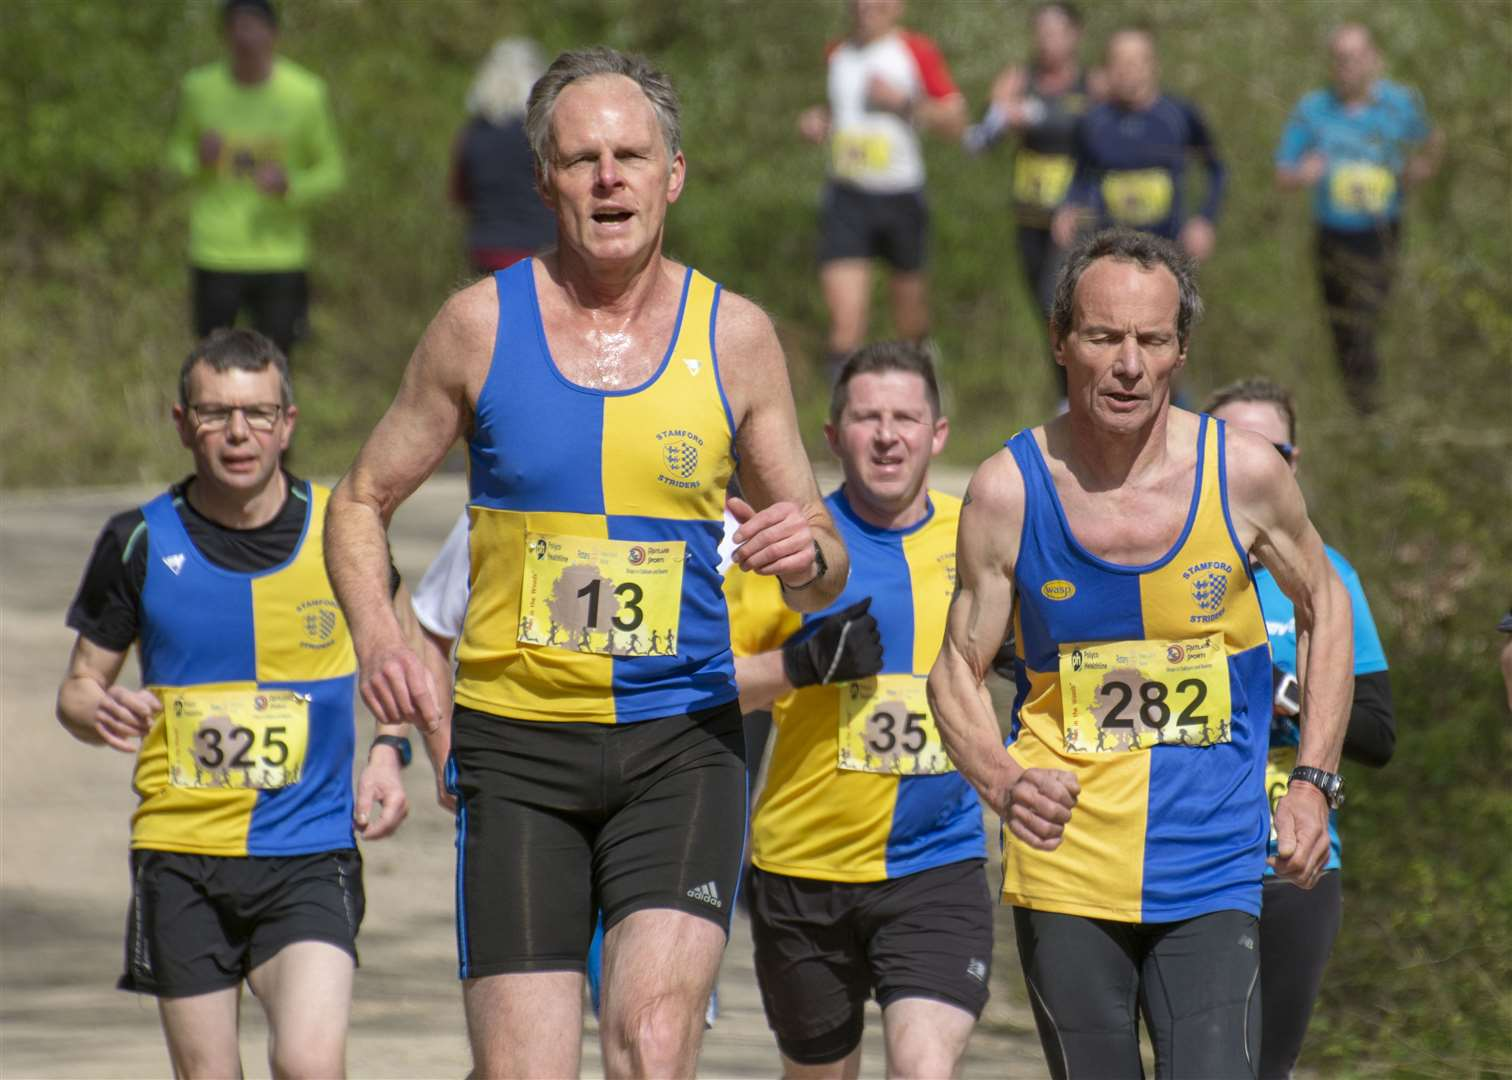 The Rotary Club of Bourne's Run in the Woods 10k on Sunday. Photo: Lee Hellwing (8671554)